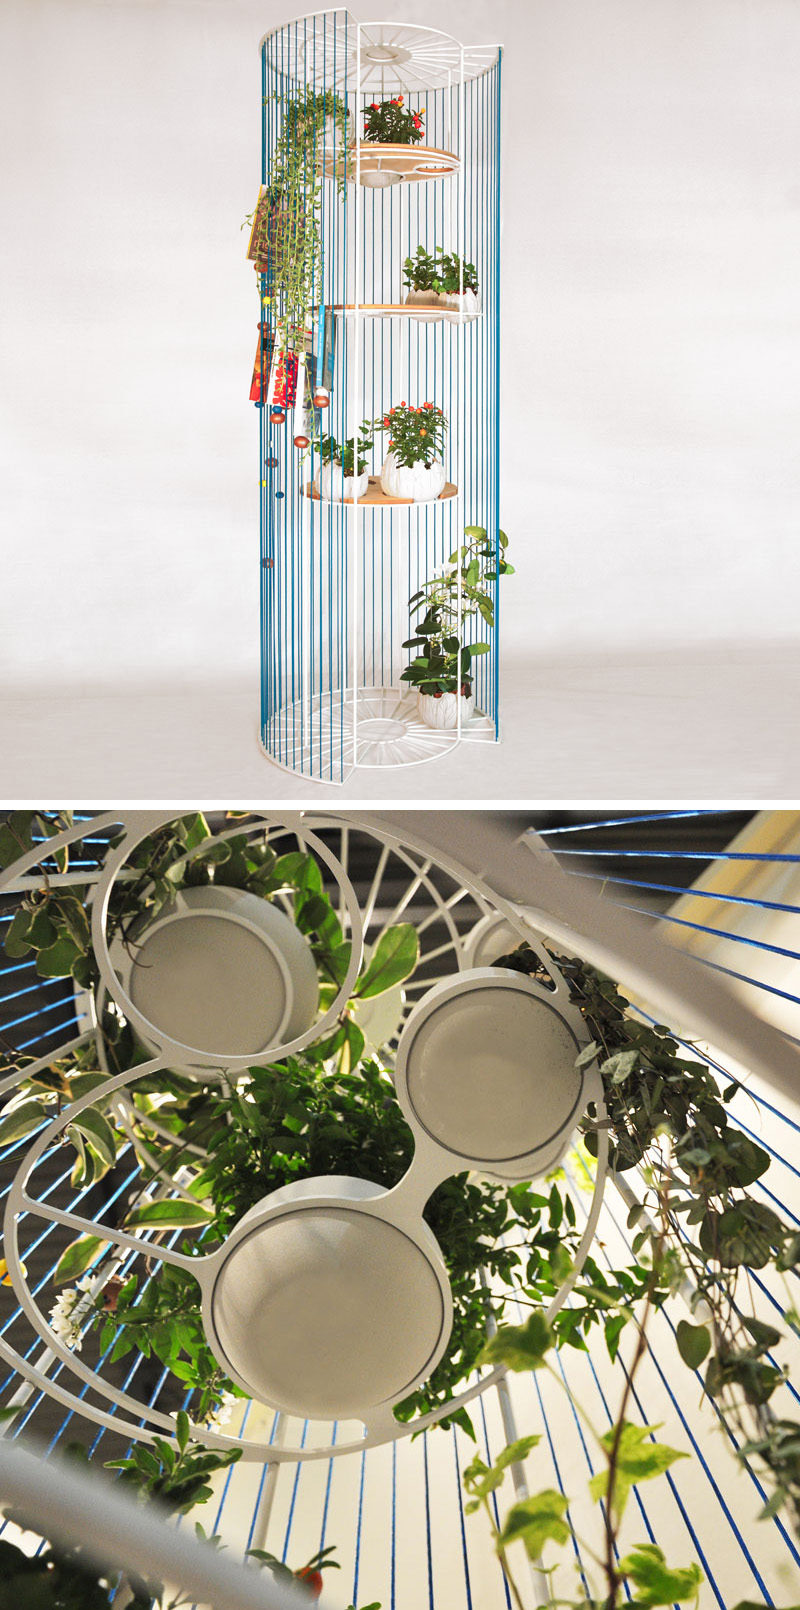 Designer Alessandra Meacci has created Bolina, a modern and multi-functional room divider, that doubles as a bookshelf and a place to display your plants.